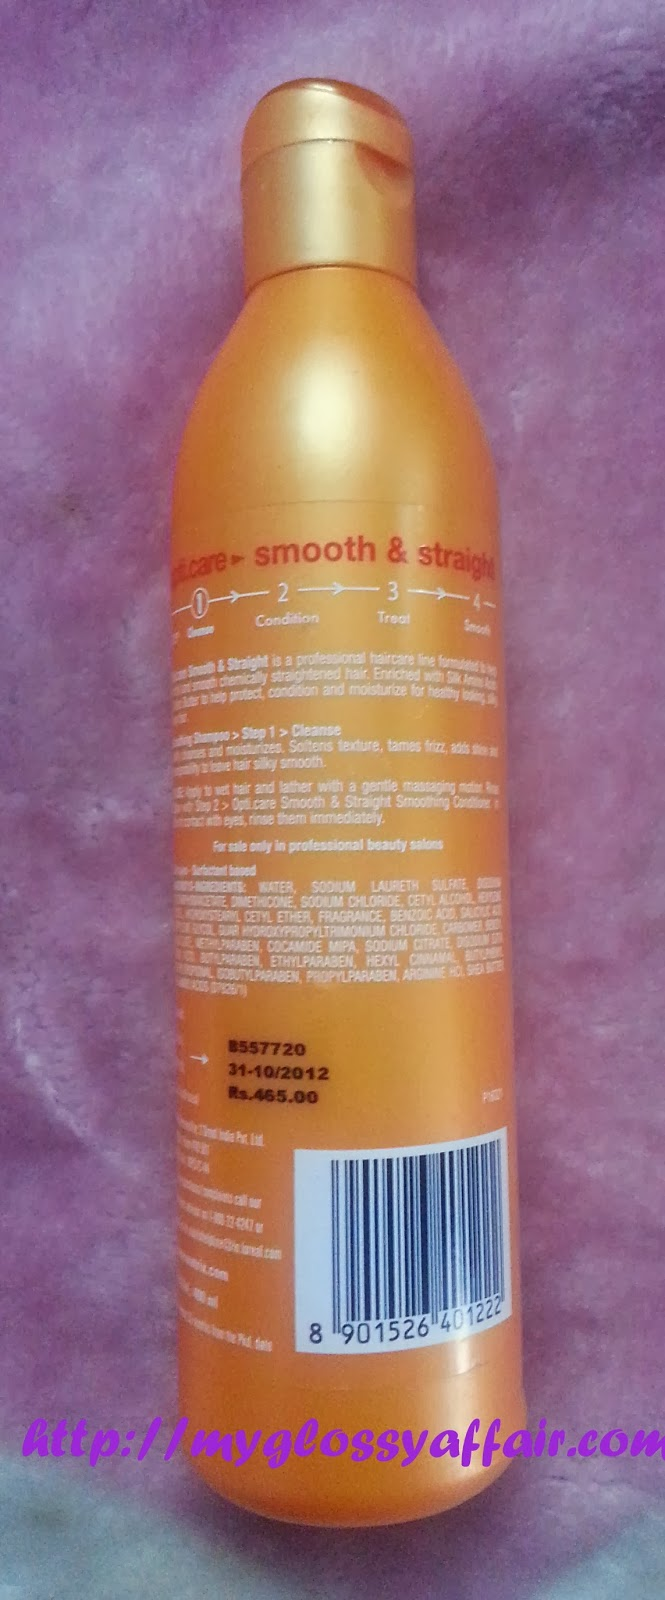 Matrix Opti Care Smoothing Shampoo Review